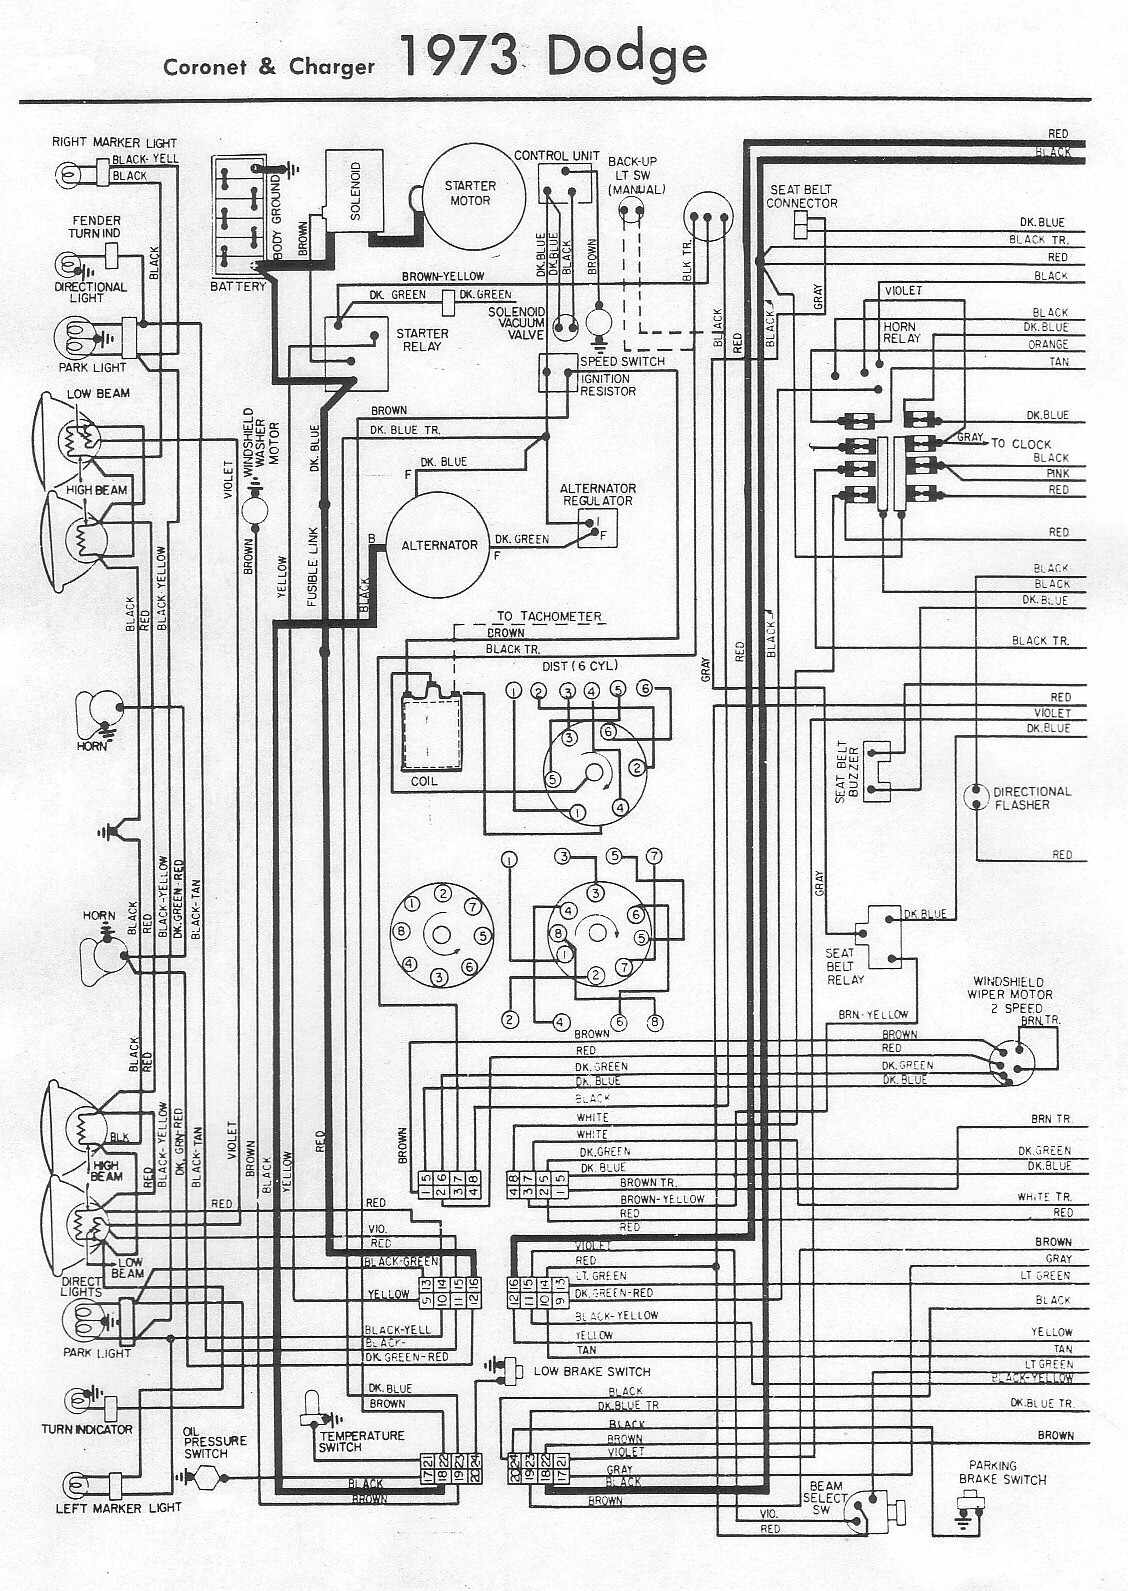 small resolution of 1973 glastron wiring diagram wiring diagram blogs bennington wiring diagram 1973 glastron wiring diagram wiring diagram